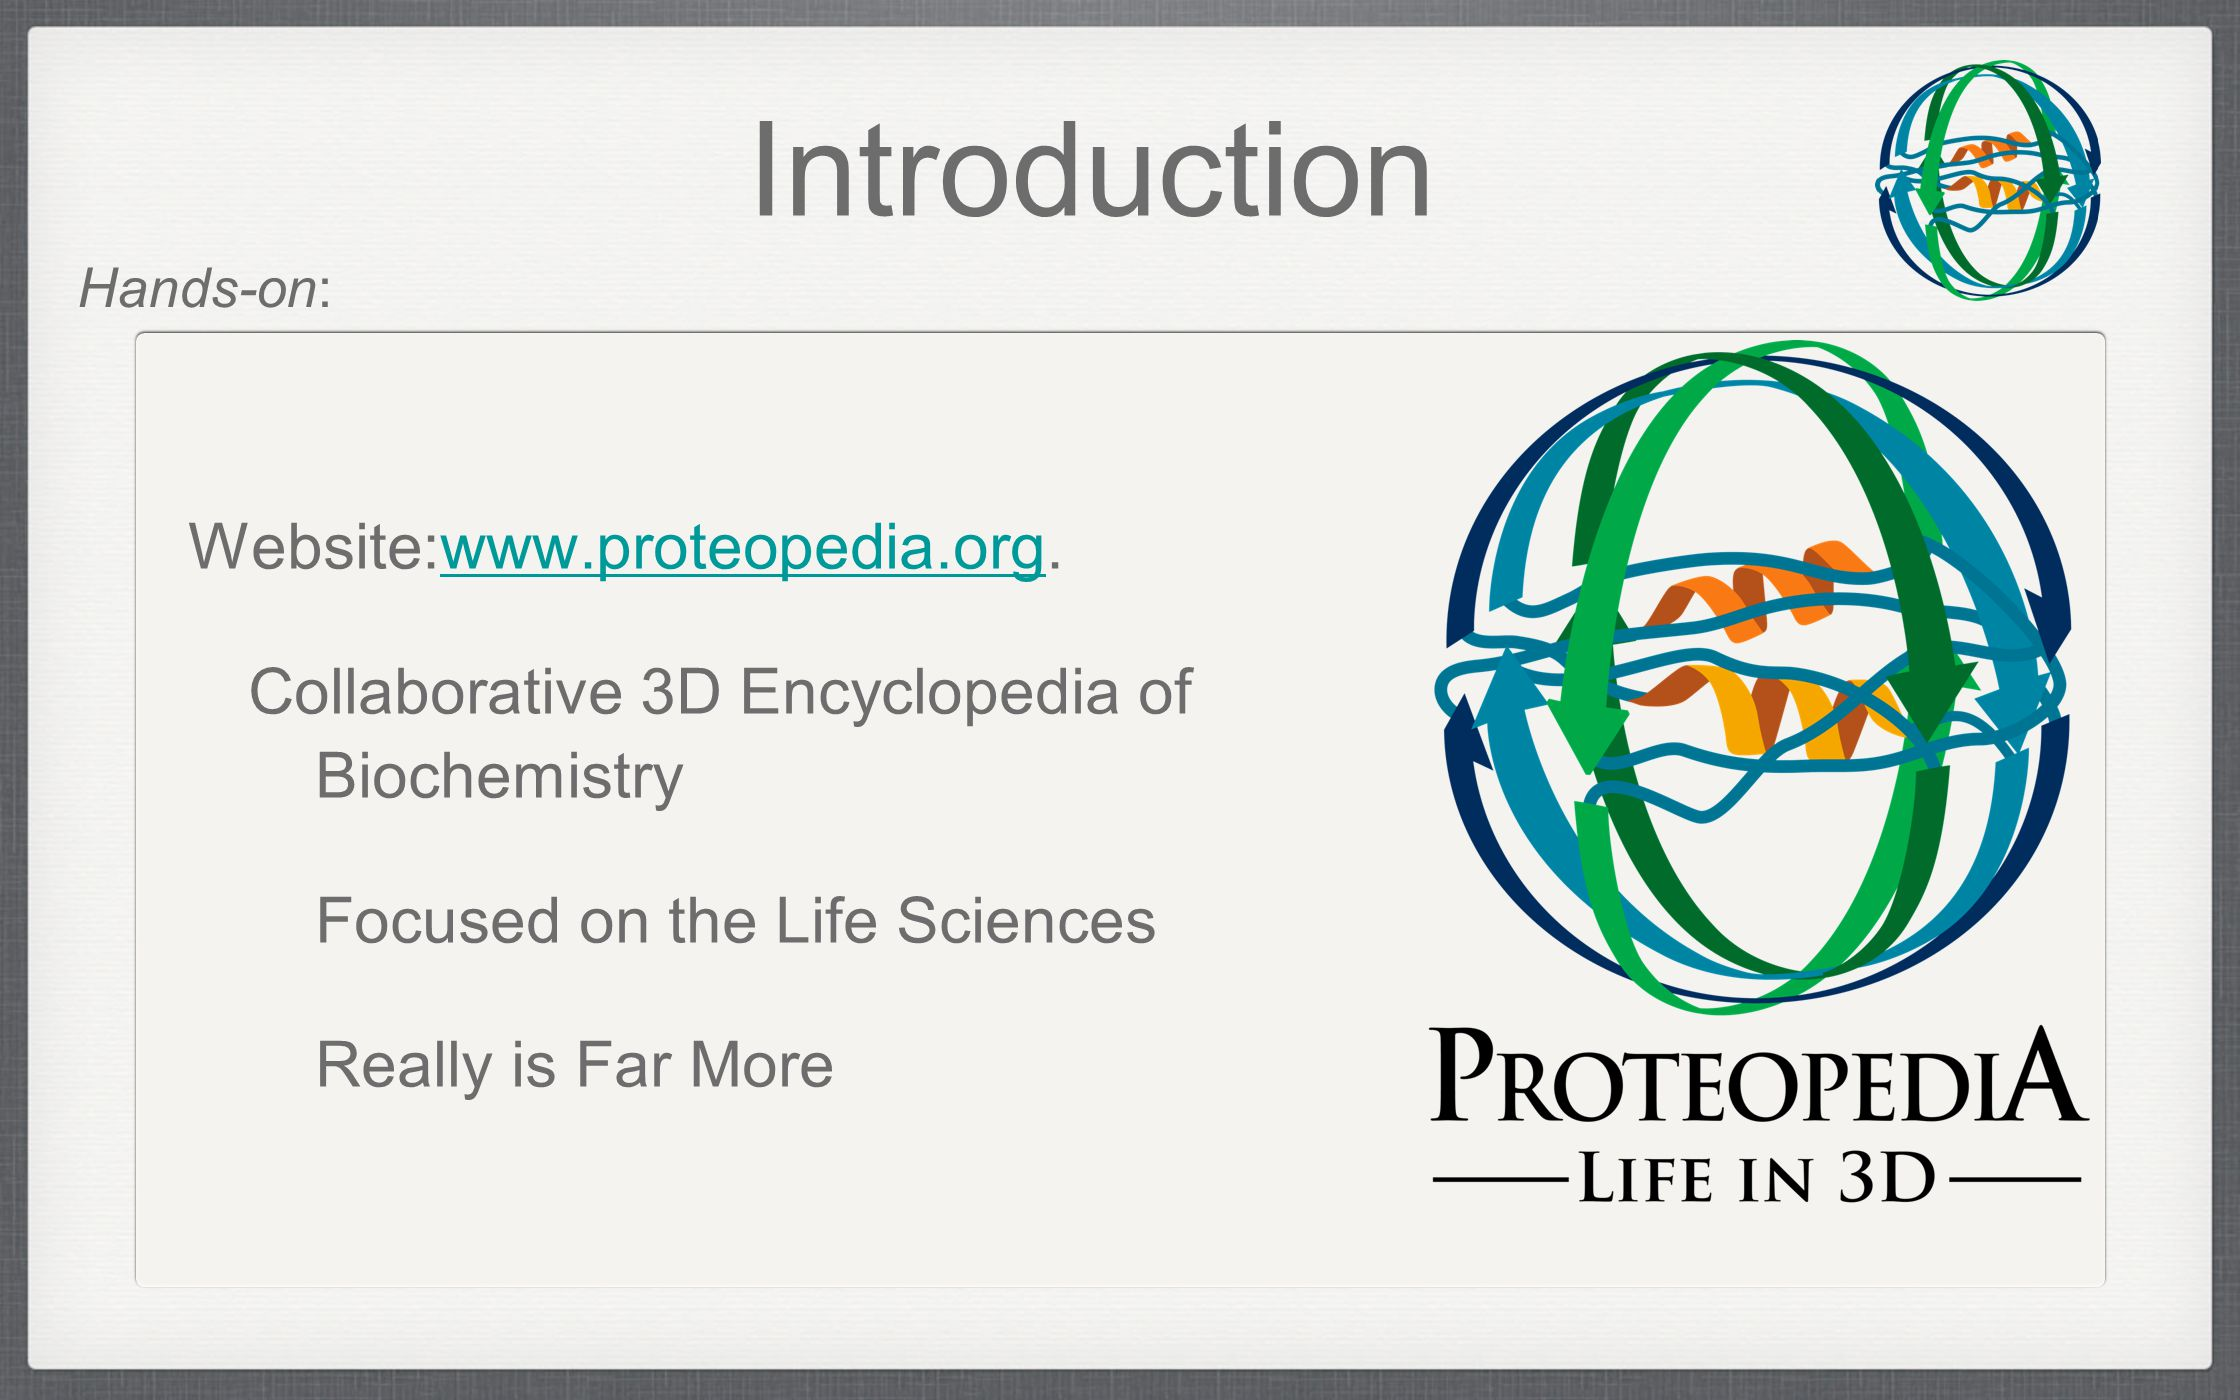 Website:www.proteopedia.org.www.proteopedia.org Collaborative 3D Encyclopedia of Biochemistry Focused on the Life Sciences Really is Far More Introduction Hands-on: